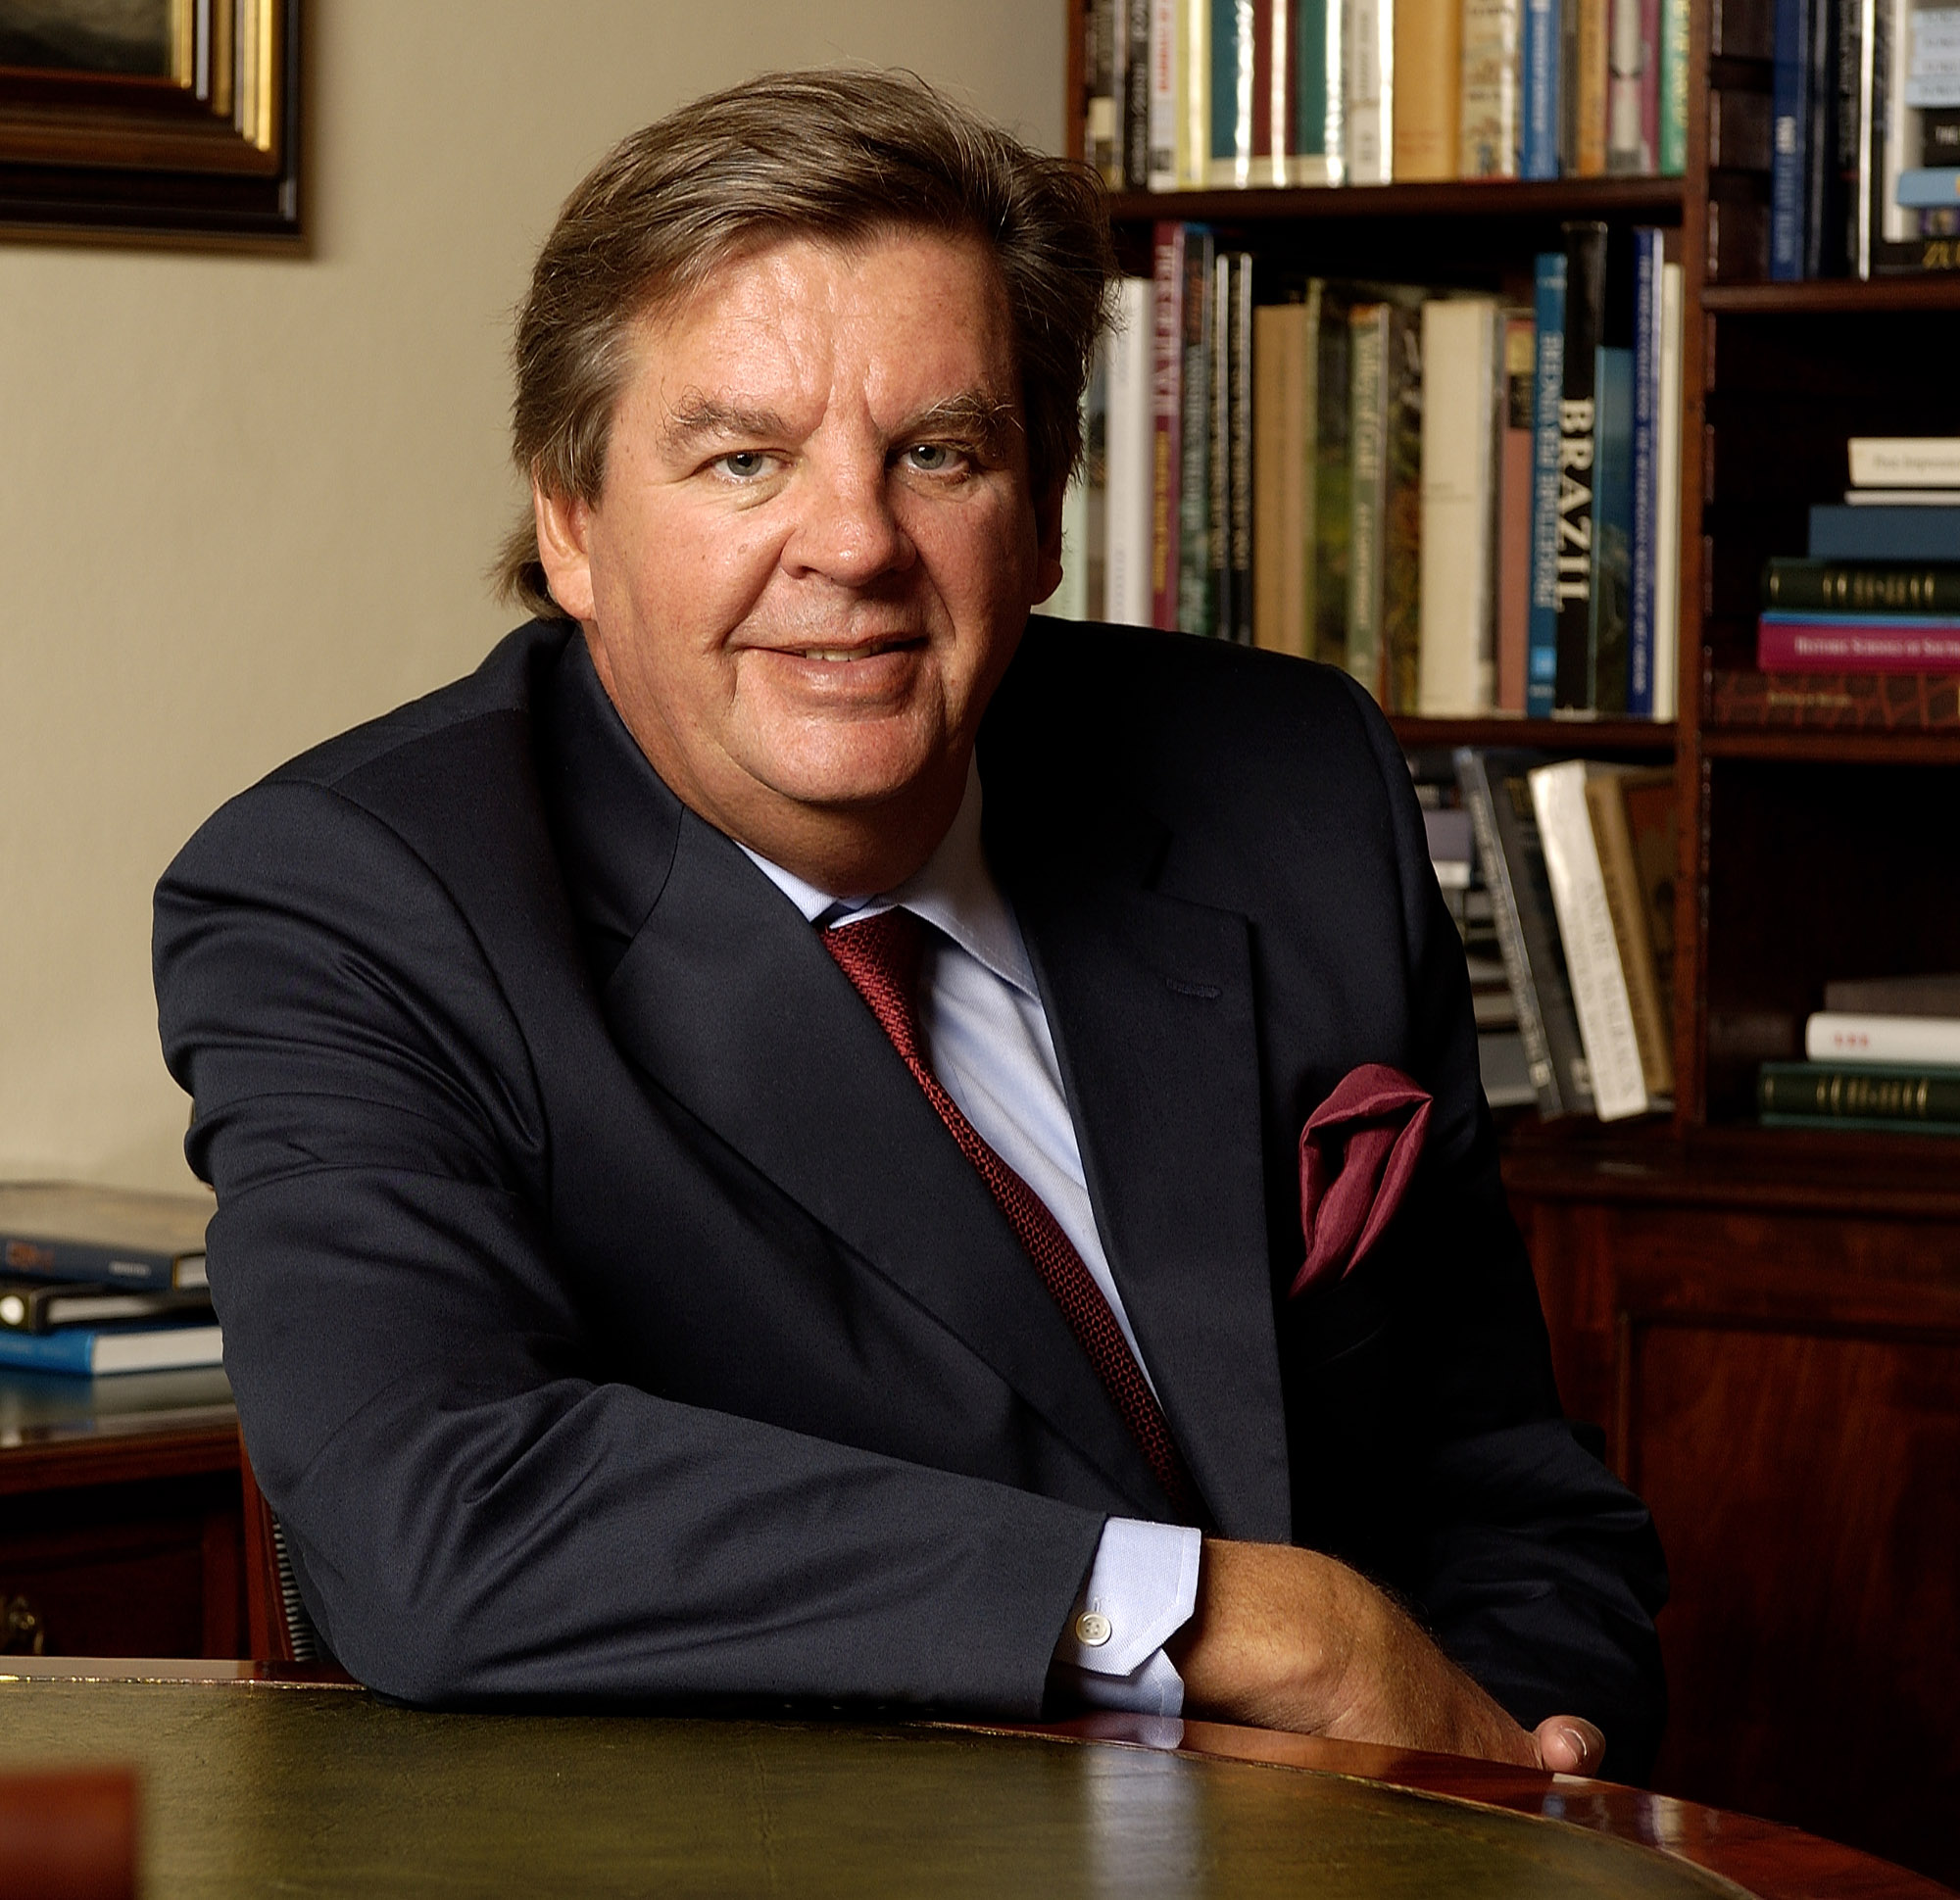 Richemont Founder & CEO Mr Johann Rupert